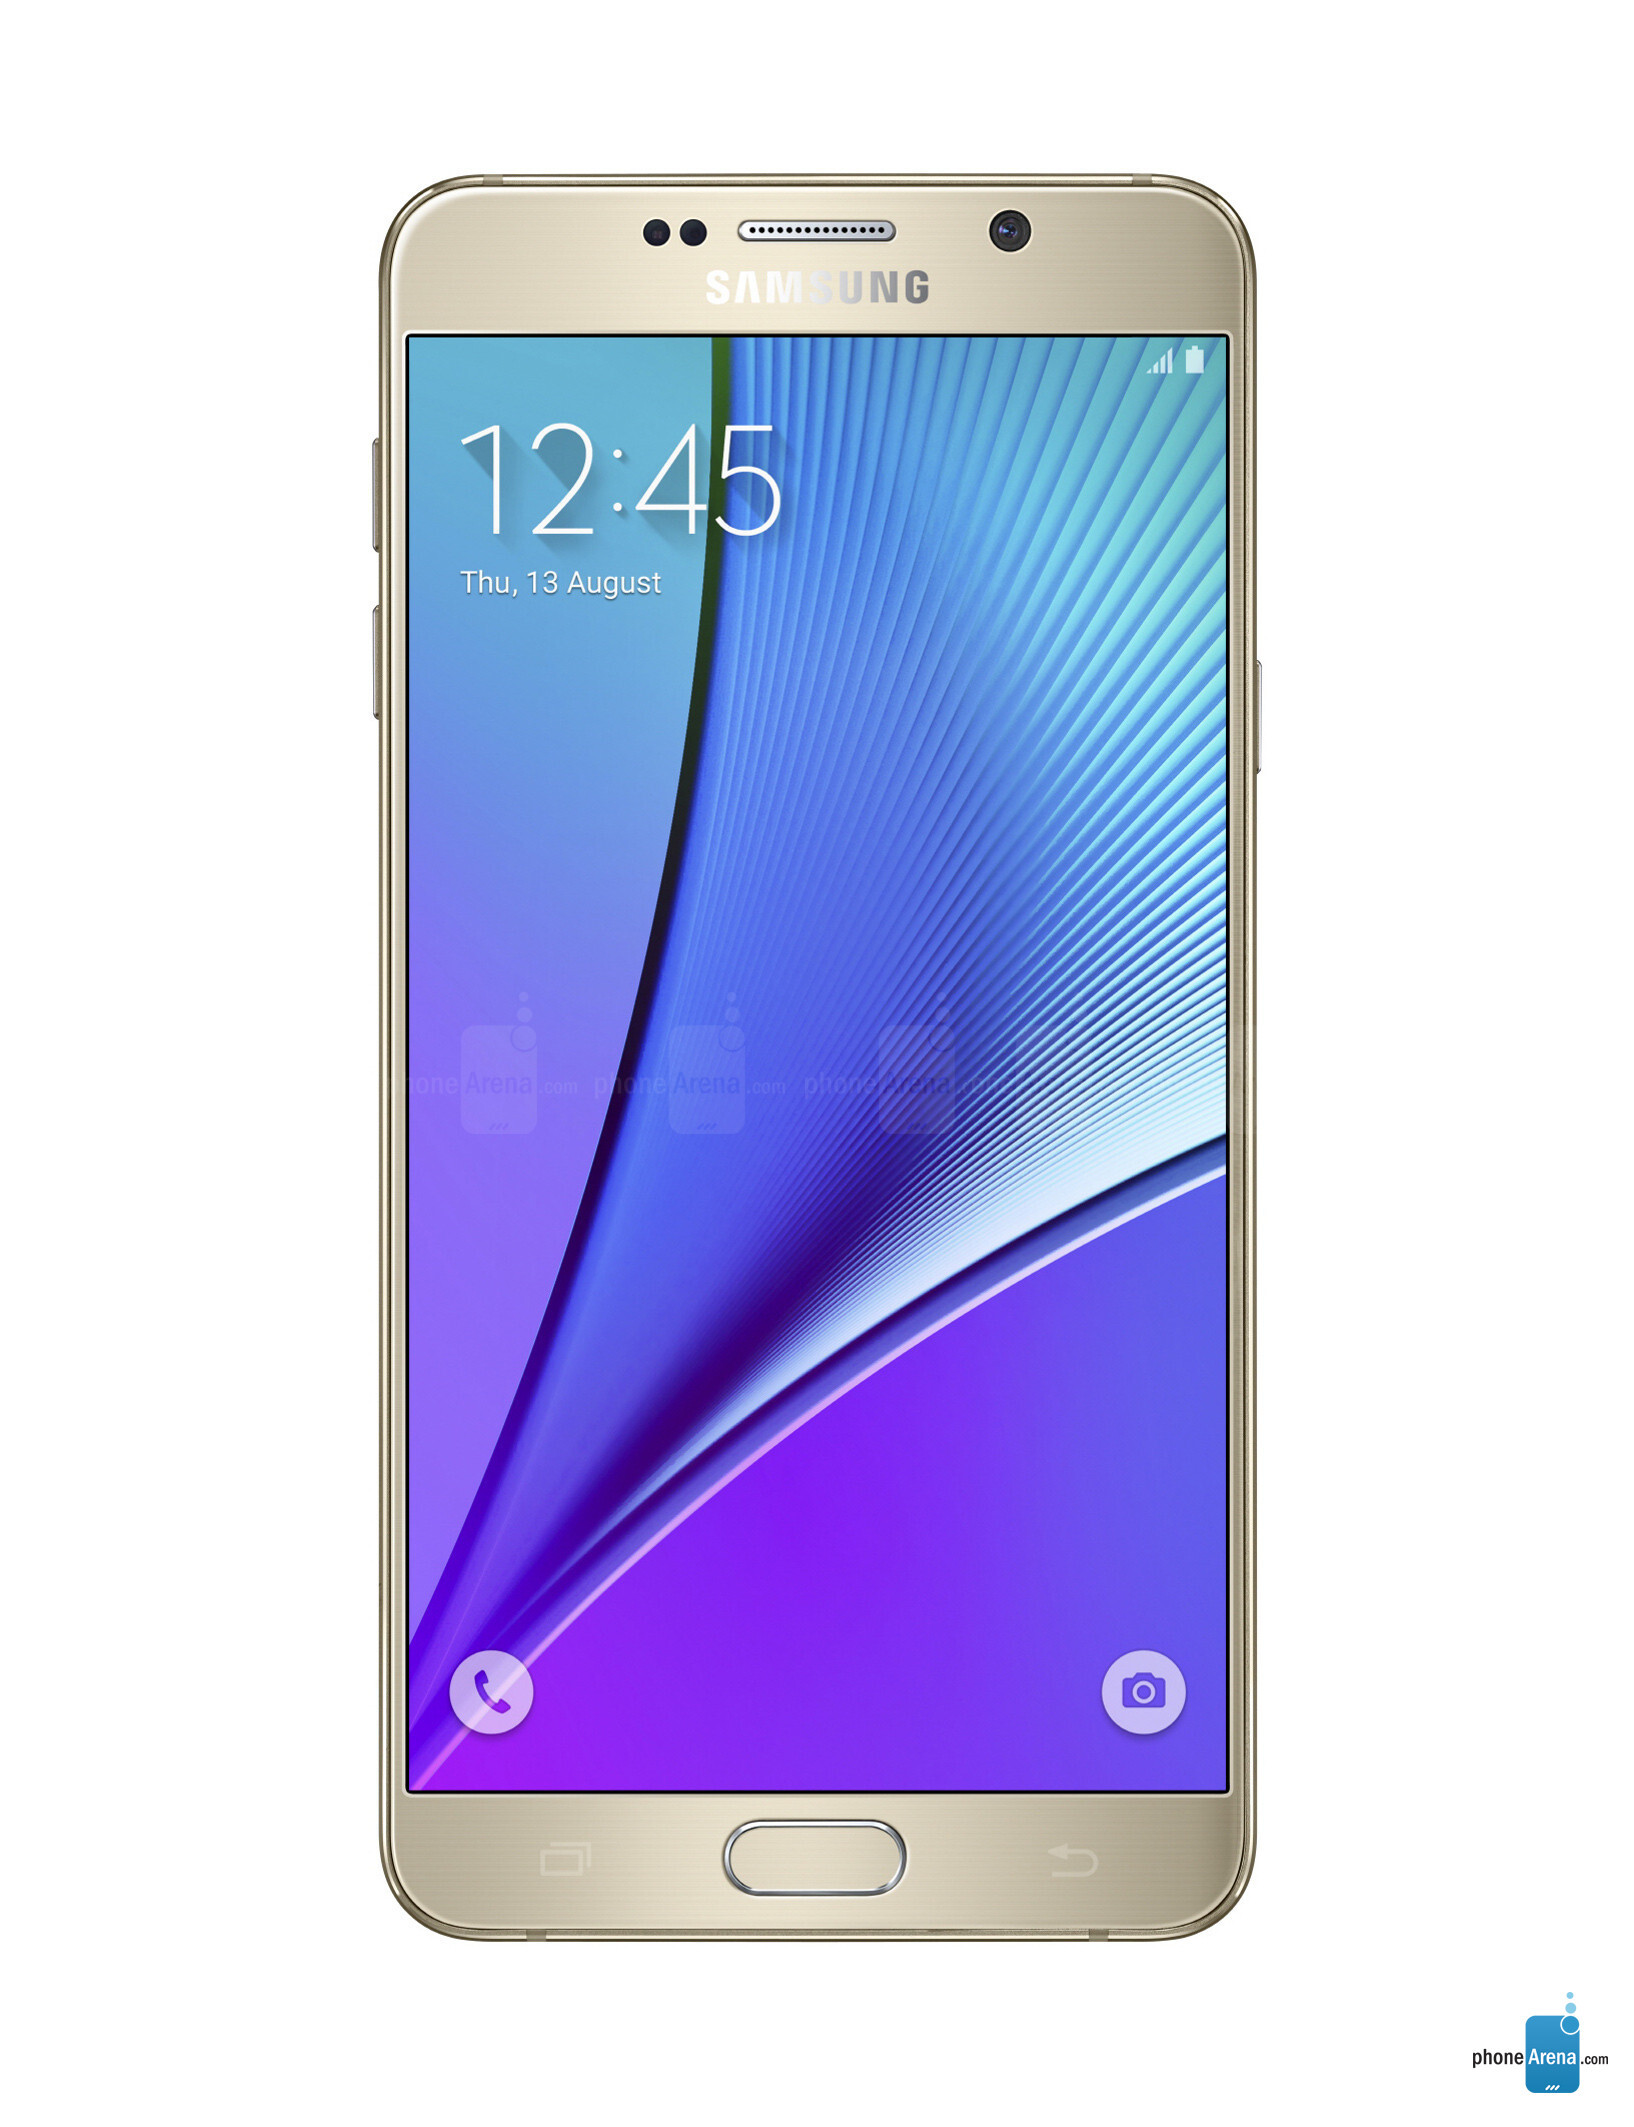 Gold platinum galaxy note 5 now available from t mobile android - Samsung Galaxy Note 5 In Gold Platinum